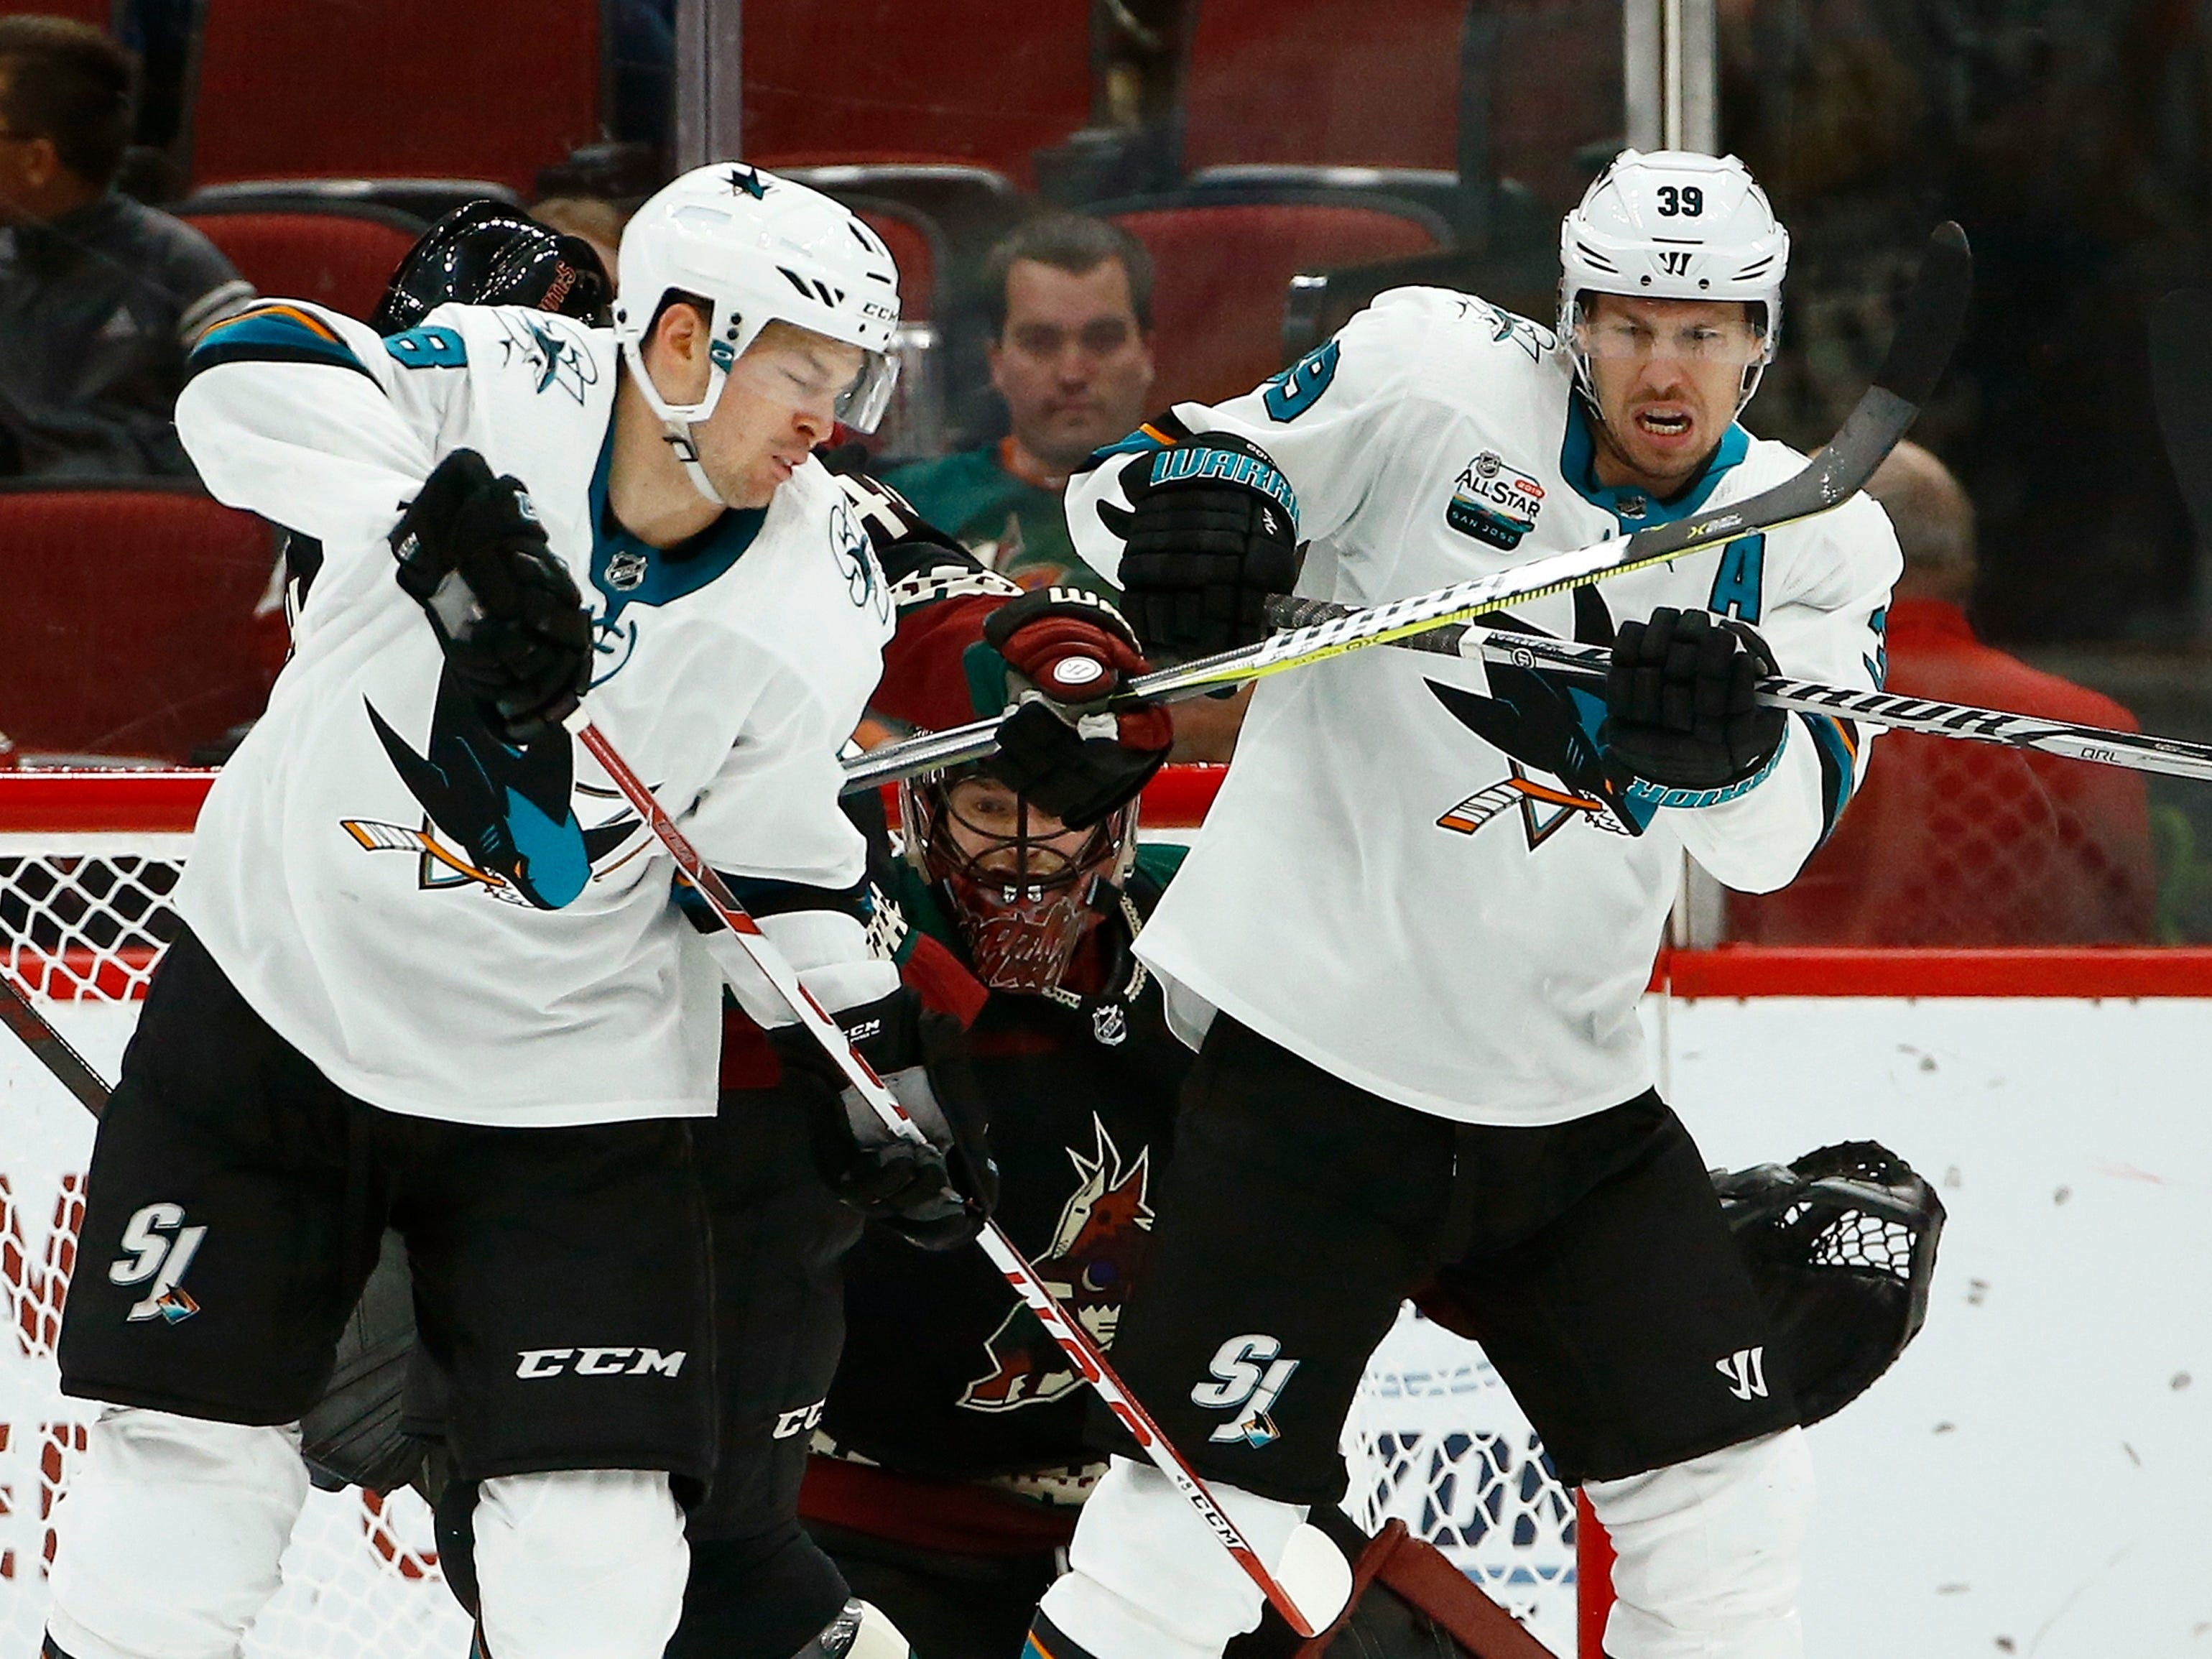 San Jose Sharks center Tomas Hertl, left, and center Logan Couture (39) try to redirect the puck in front of Arizona Coyotes goaltender Adin Hill, middle, during the second period of an NHL hockey game, Saturday, Dec. 8, 2018, in Phoenix.